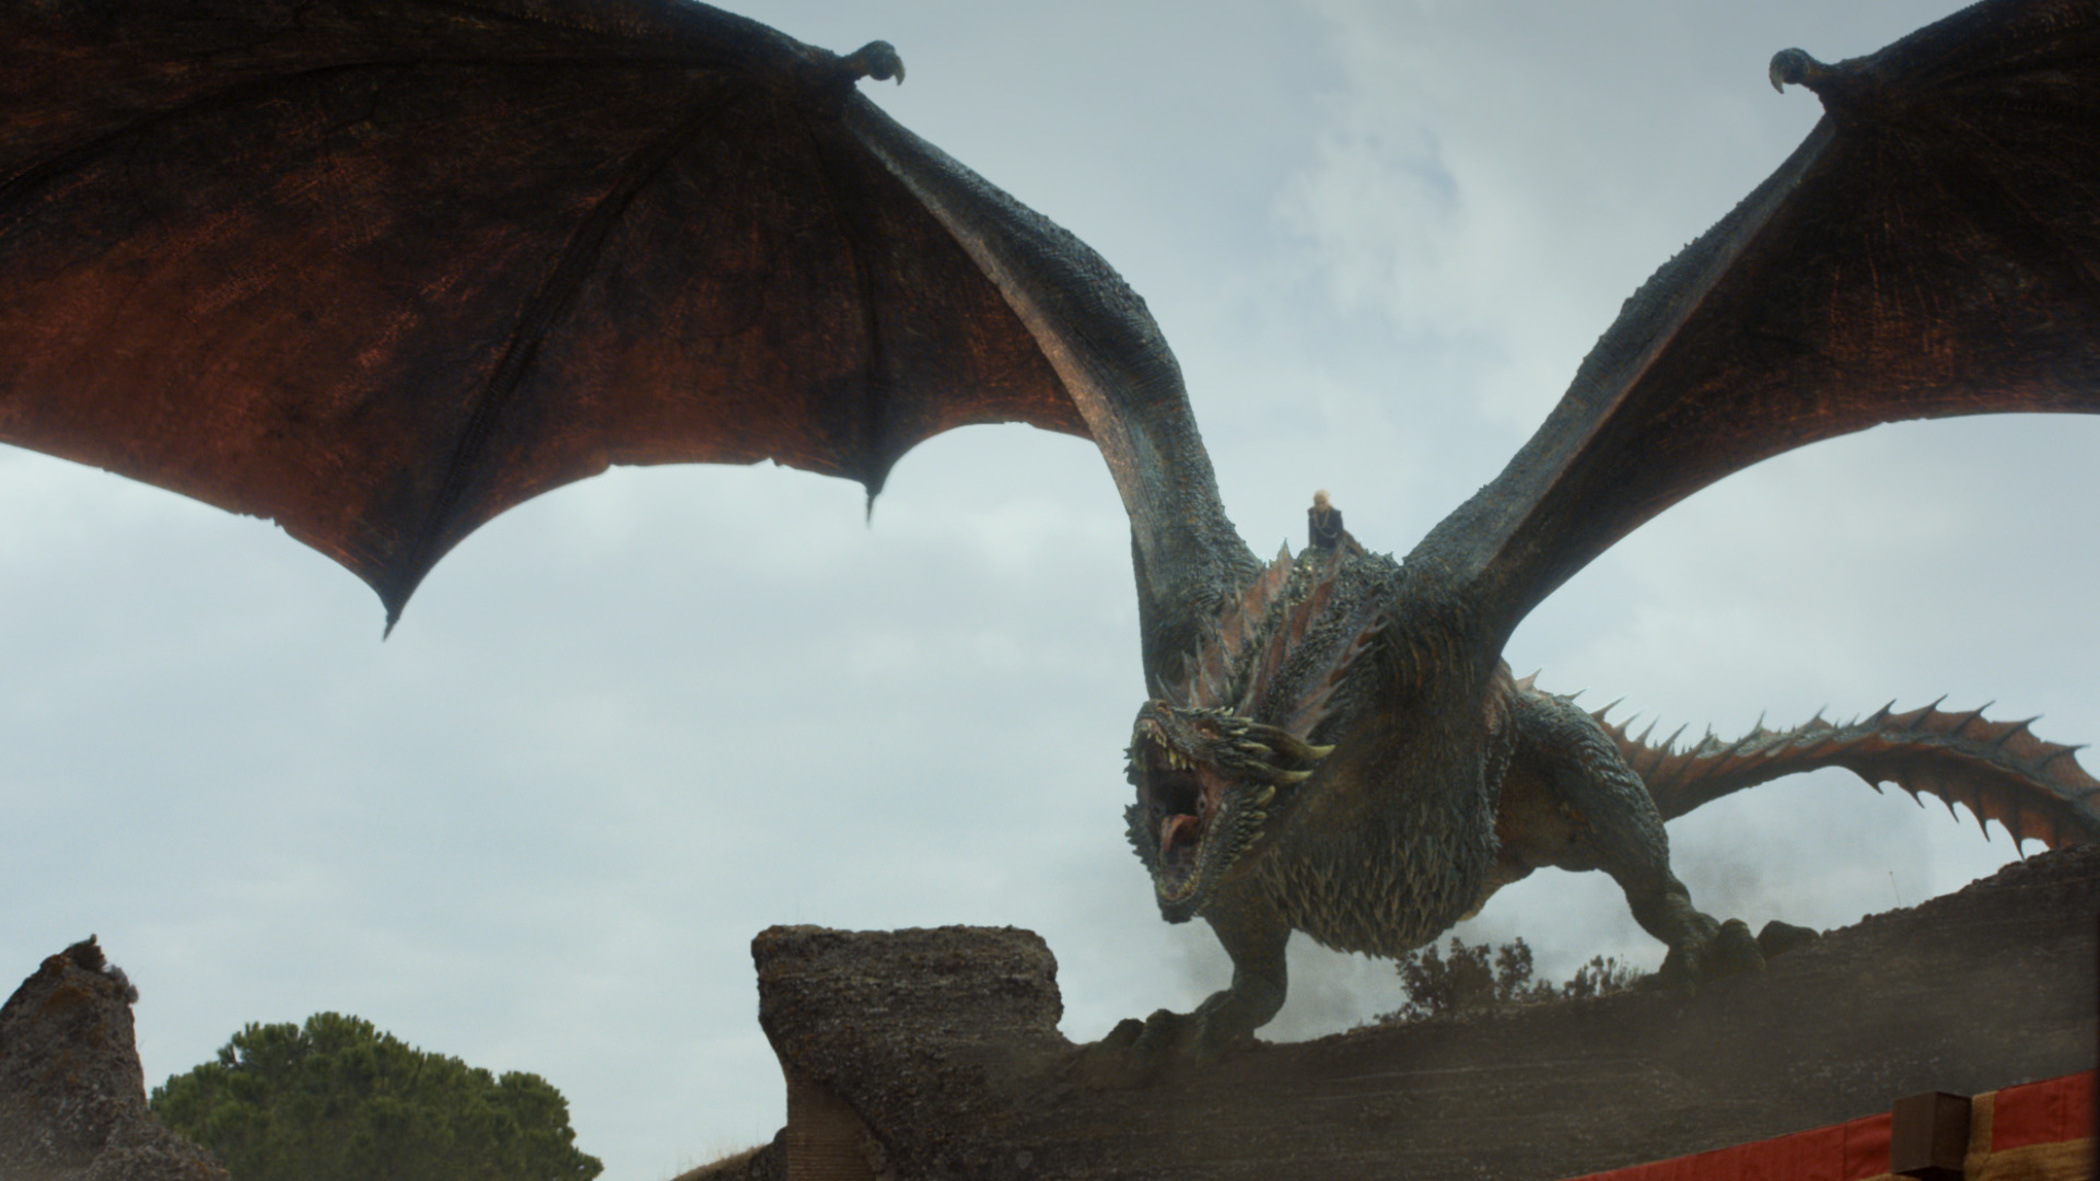 Dragons game of thrones colors - Game Of Thrones Always Work In A Picture Of A Dragon It S Just Good Form Hbo